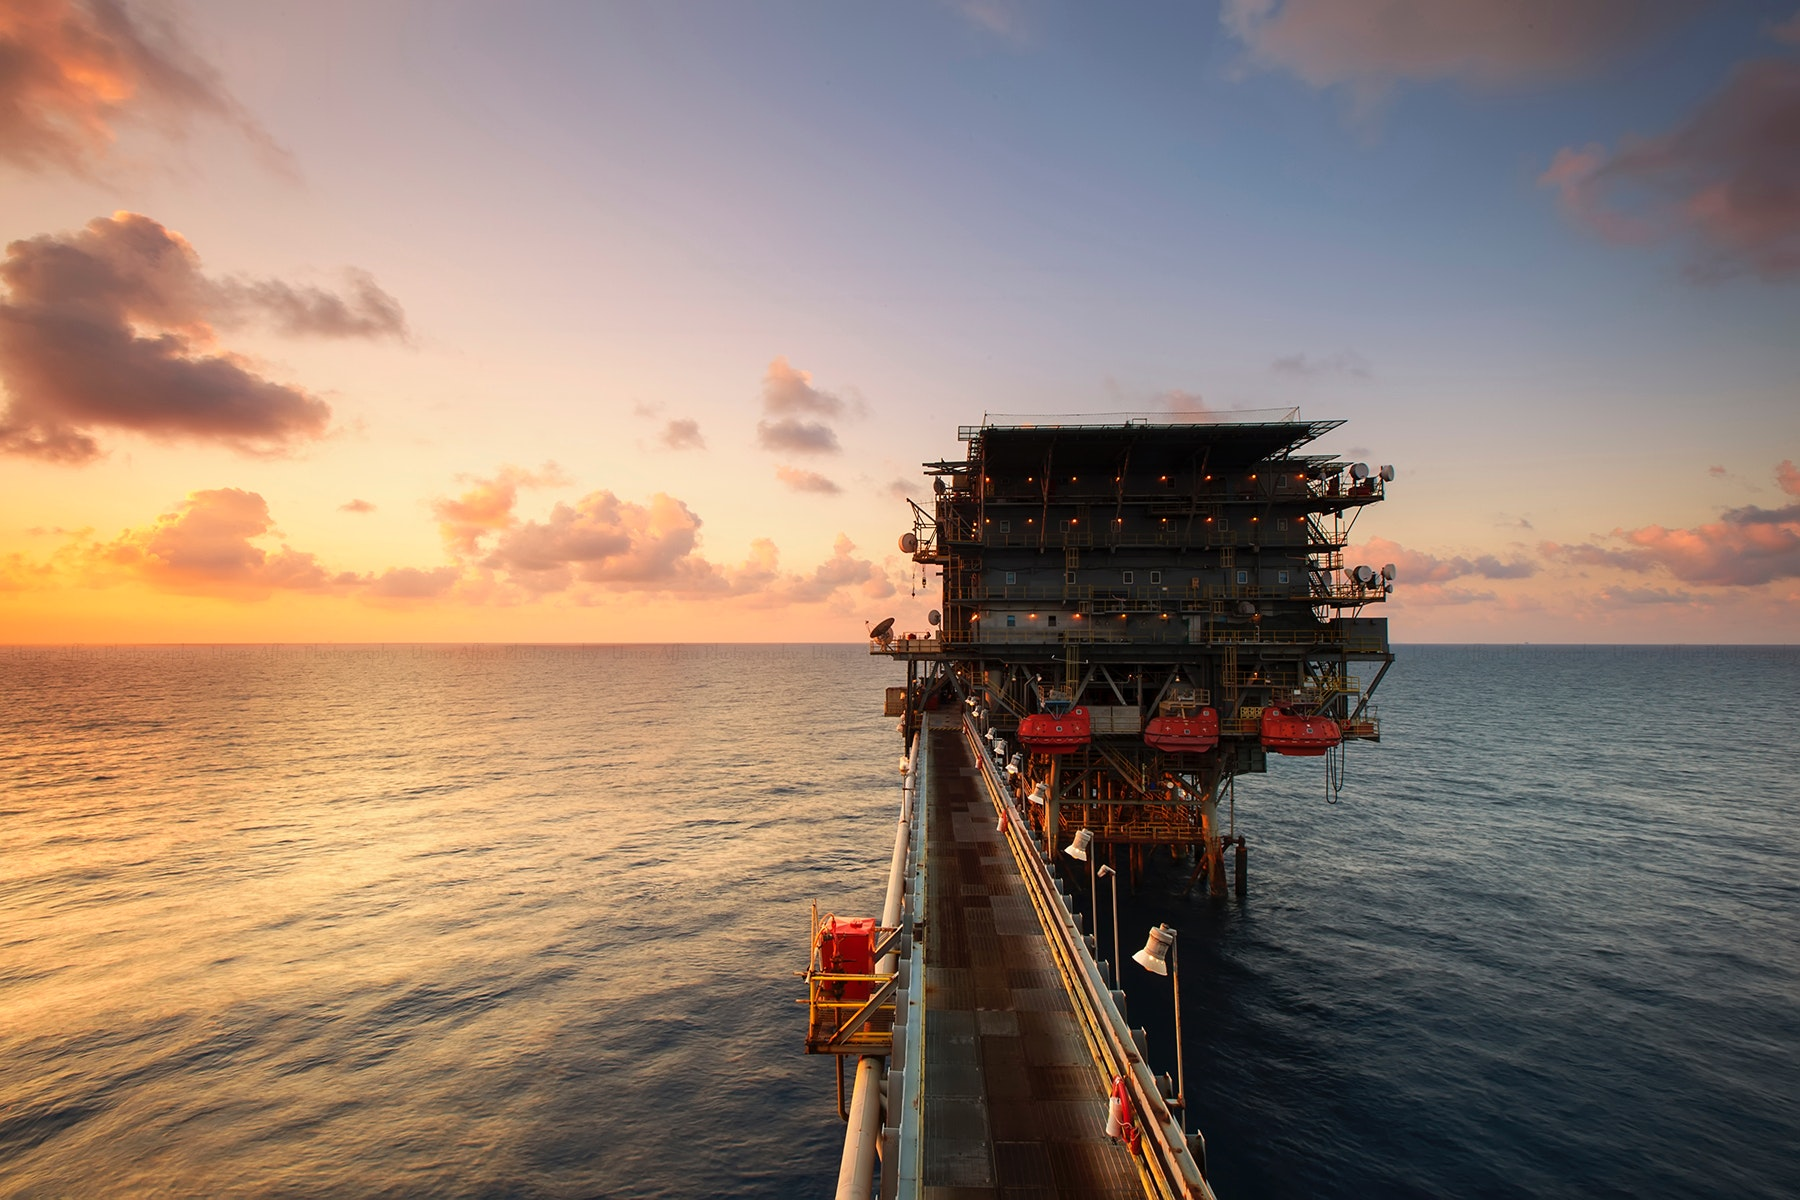 An Oil Rig Surrounded By The Ocean - Petroleum Engineers - The 14 Best Engineering Jobs For The Future